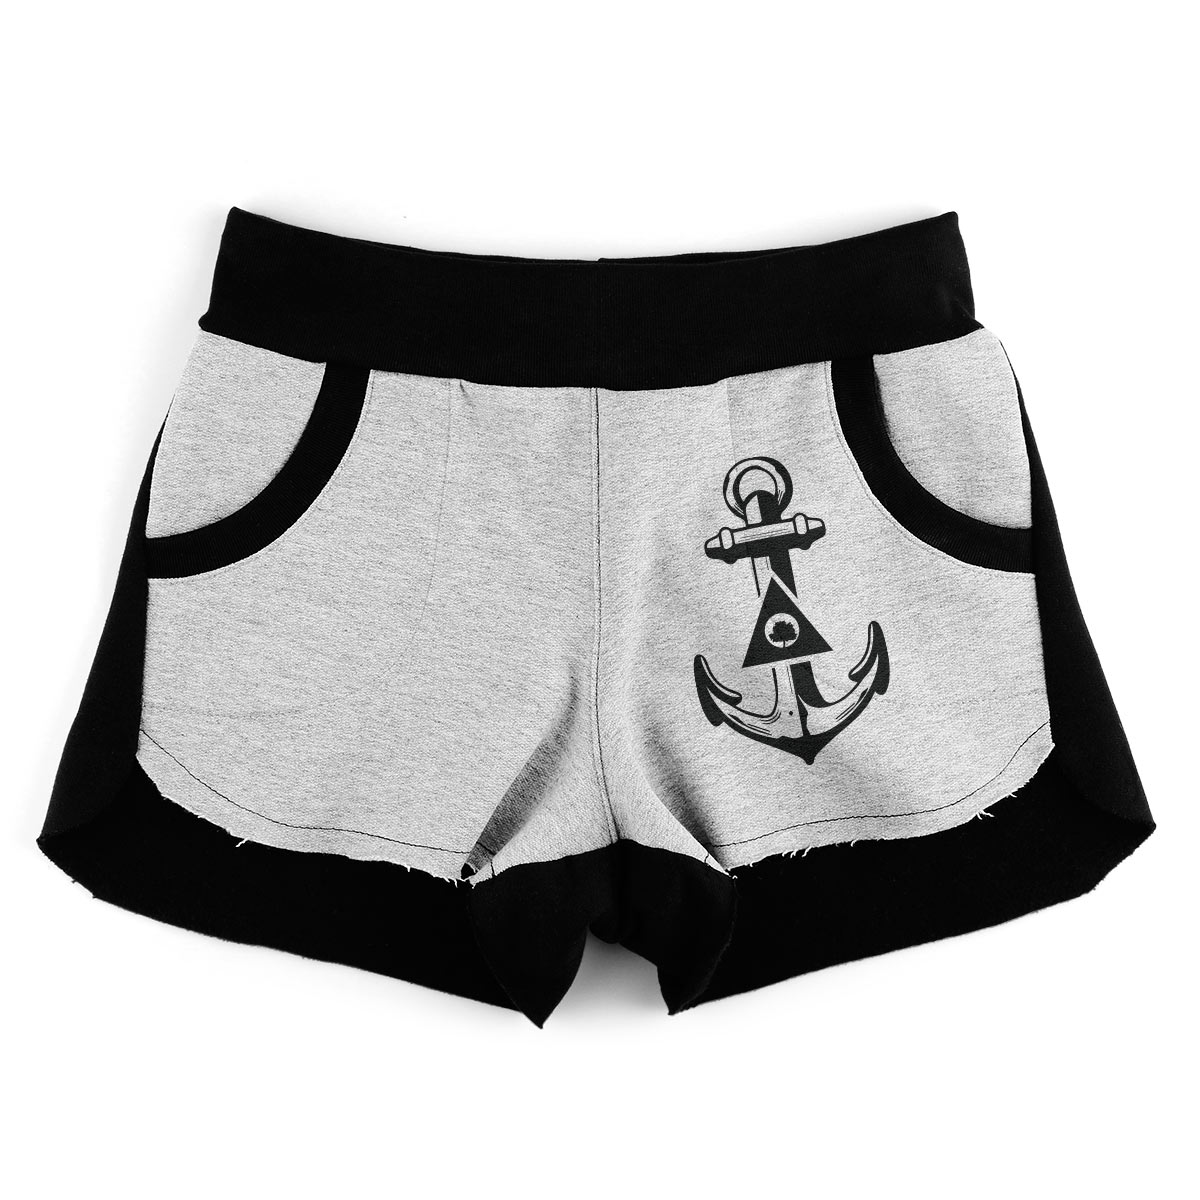 Shorts de Moletom Fresno Anchor